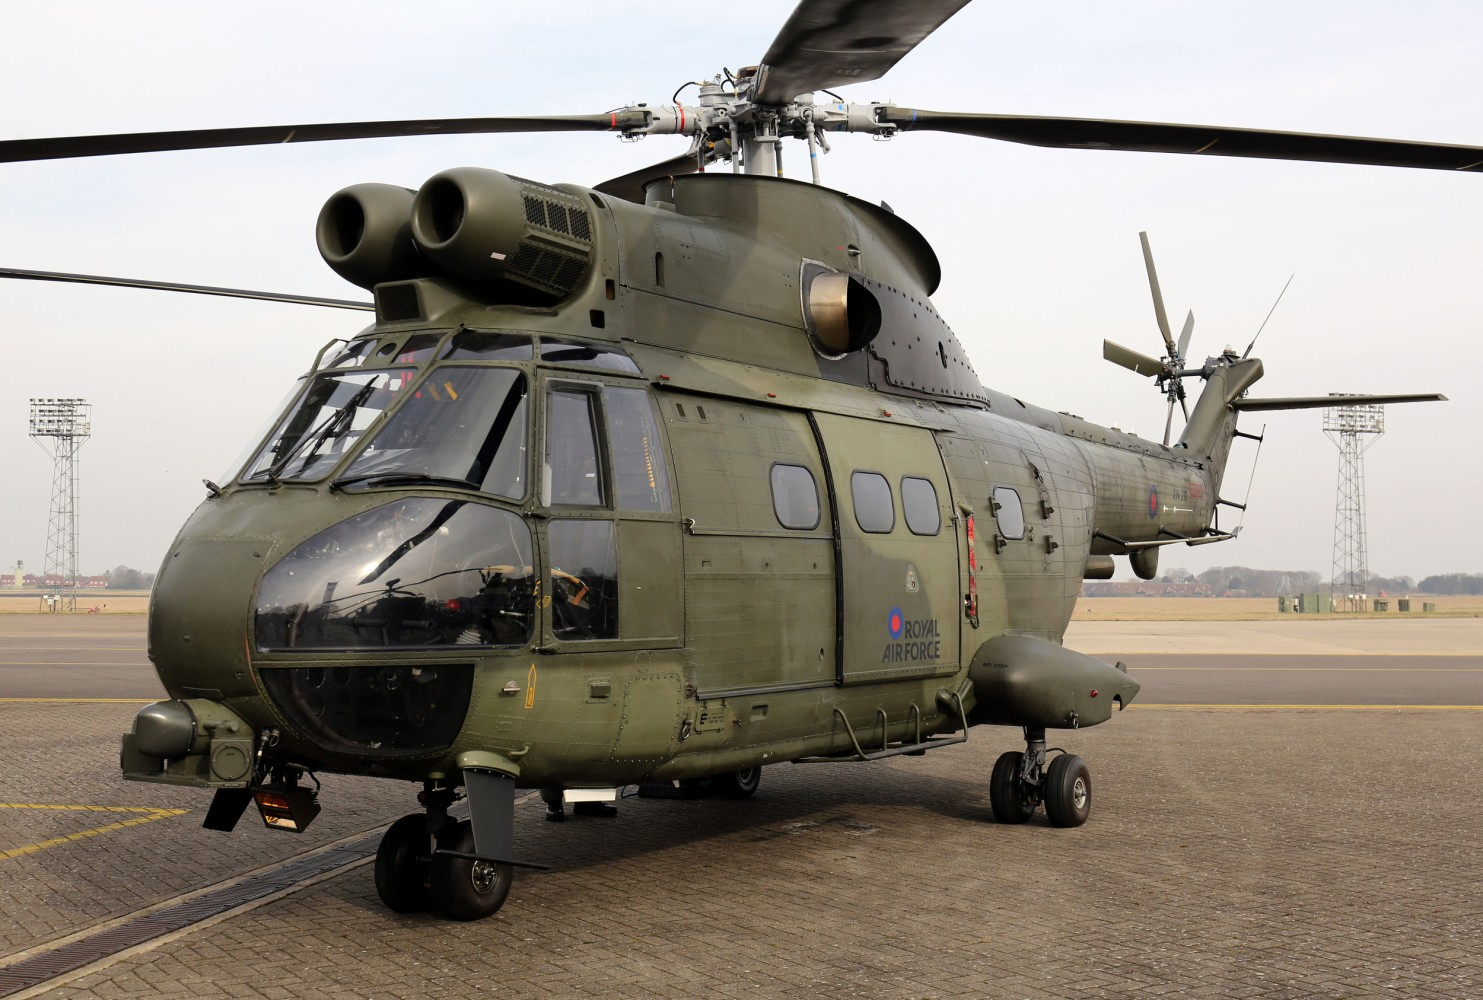 Elicottero Puma : Two americans among five killed in afghanistan chopper